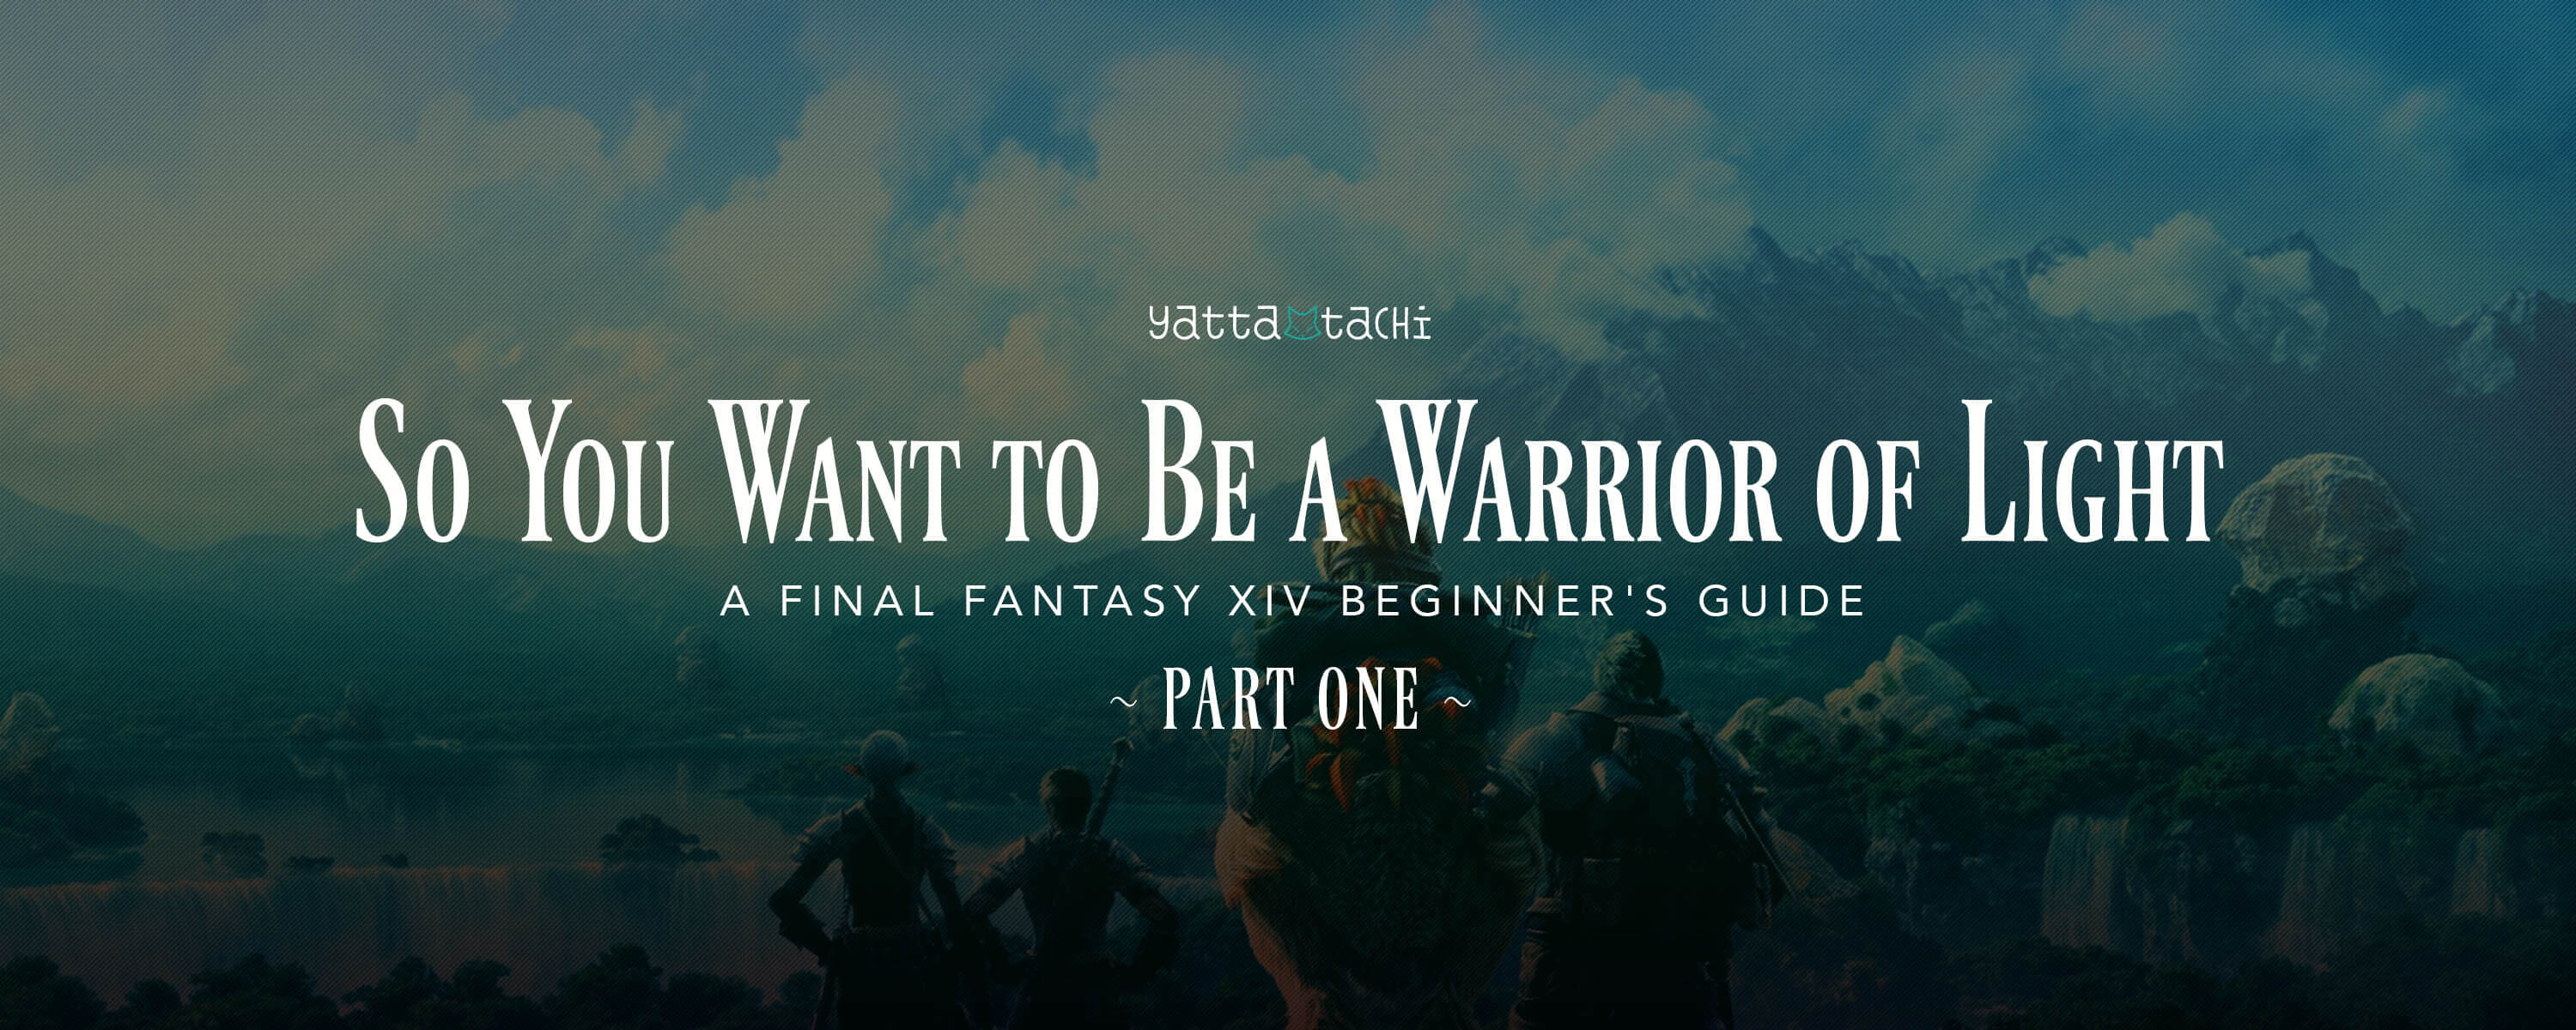 So You Want to Be a Warrior of Light ( FFXIV Beginner's Guide) Pt  1